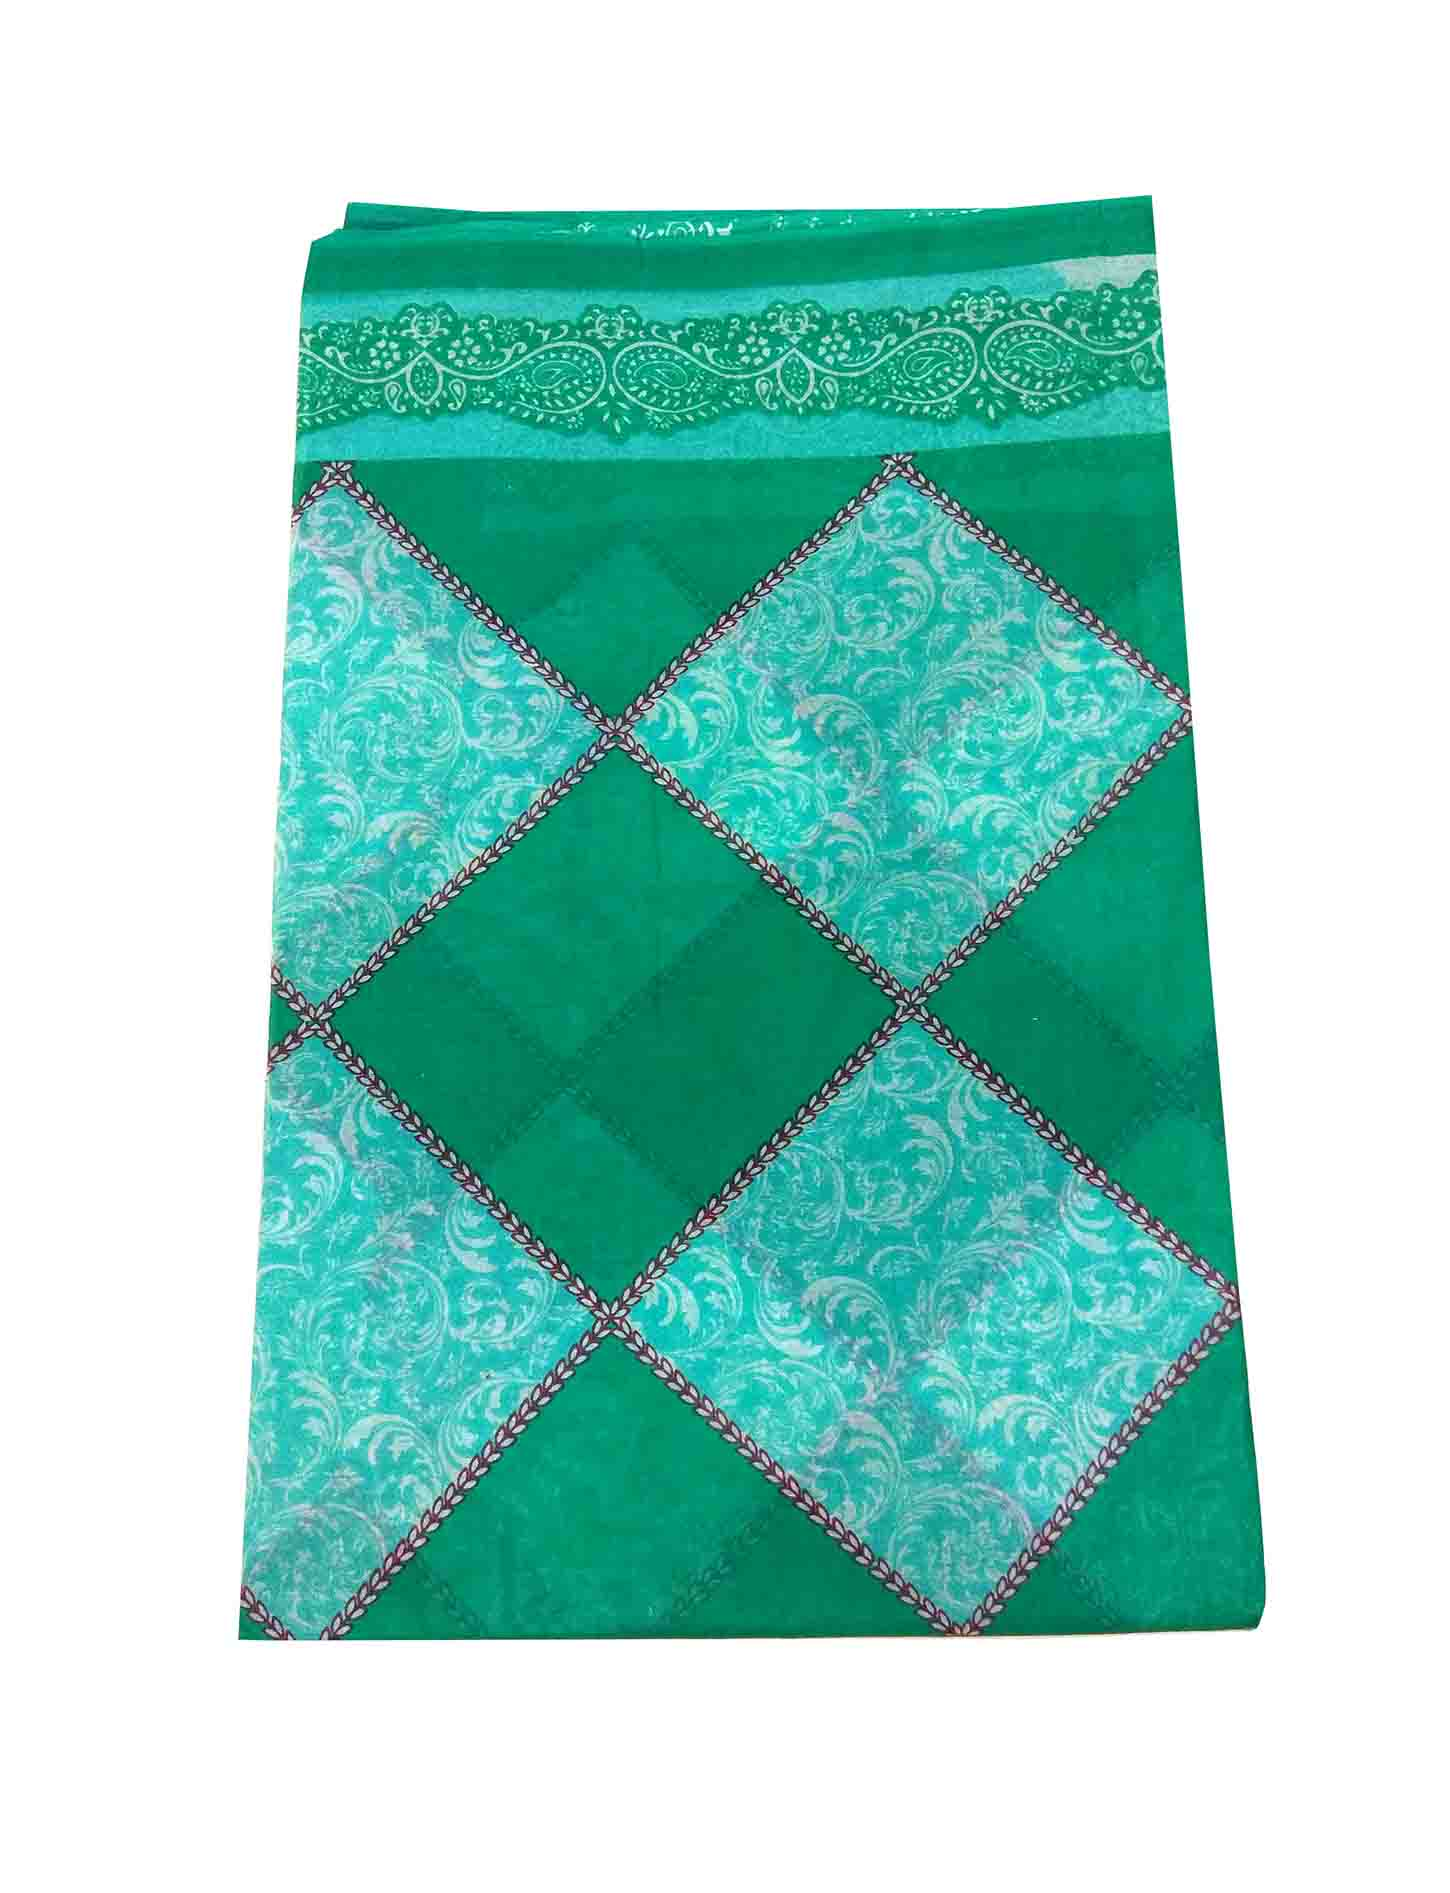 WMN COTTON SAREE WITHOUT BLOUSE-GREEN-AT COTTON PRINT D NO 2